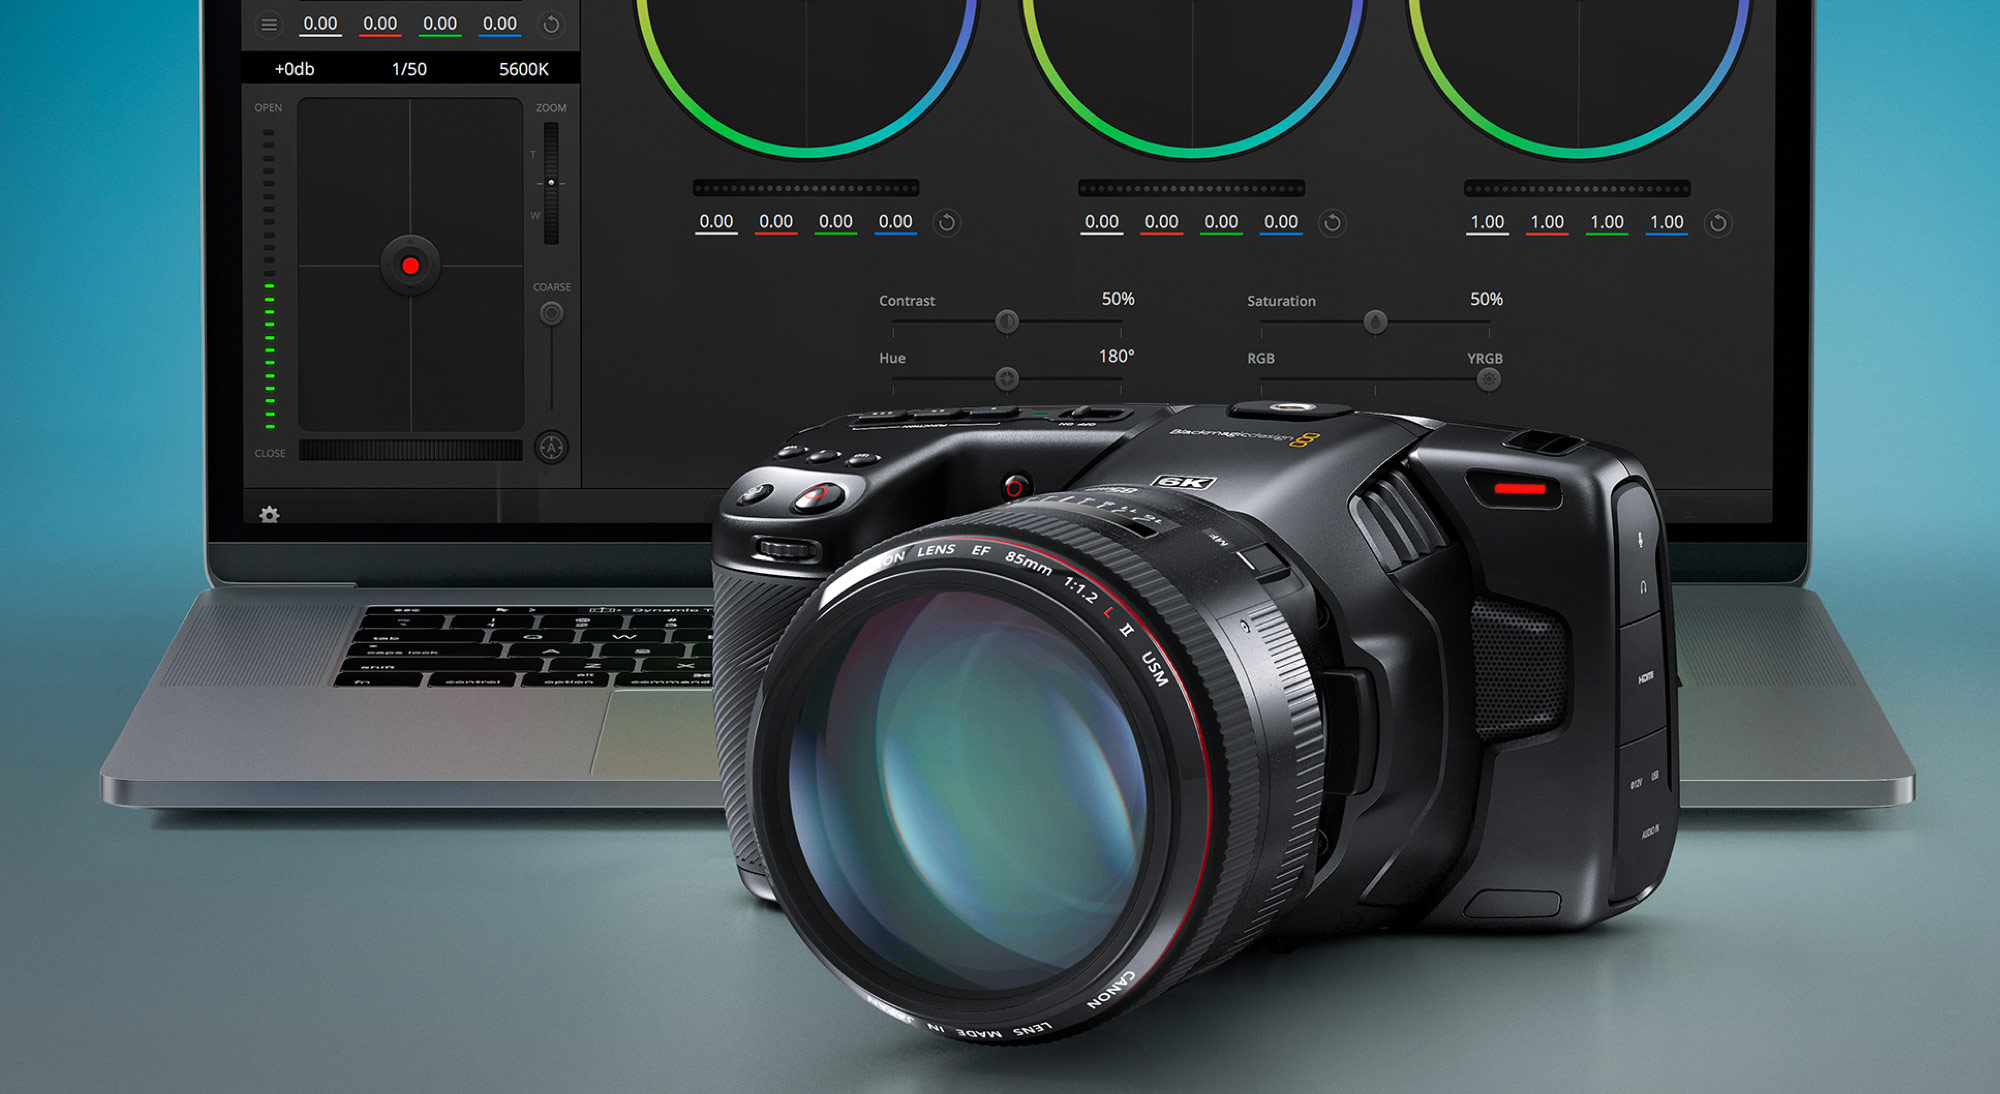 Blackmagic Design S Pocket Cinema Camera 6k Now Costs 1 995 After Permanent Price Drop Digital Photography Review